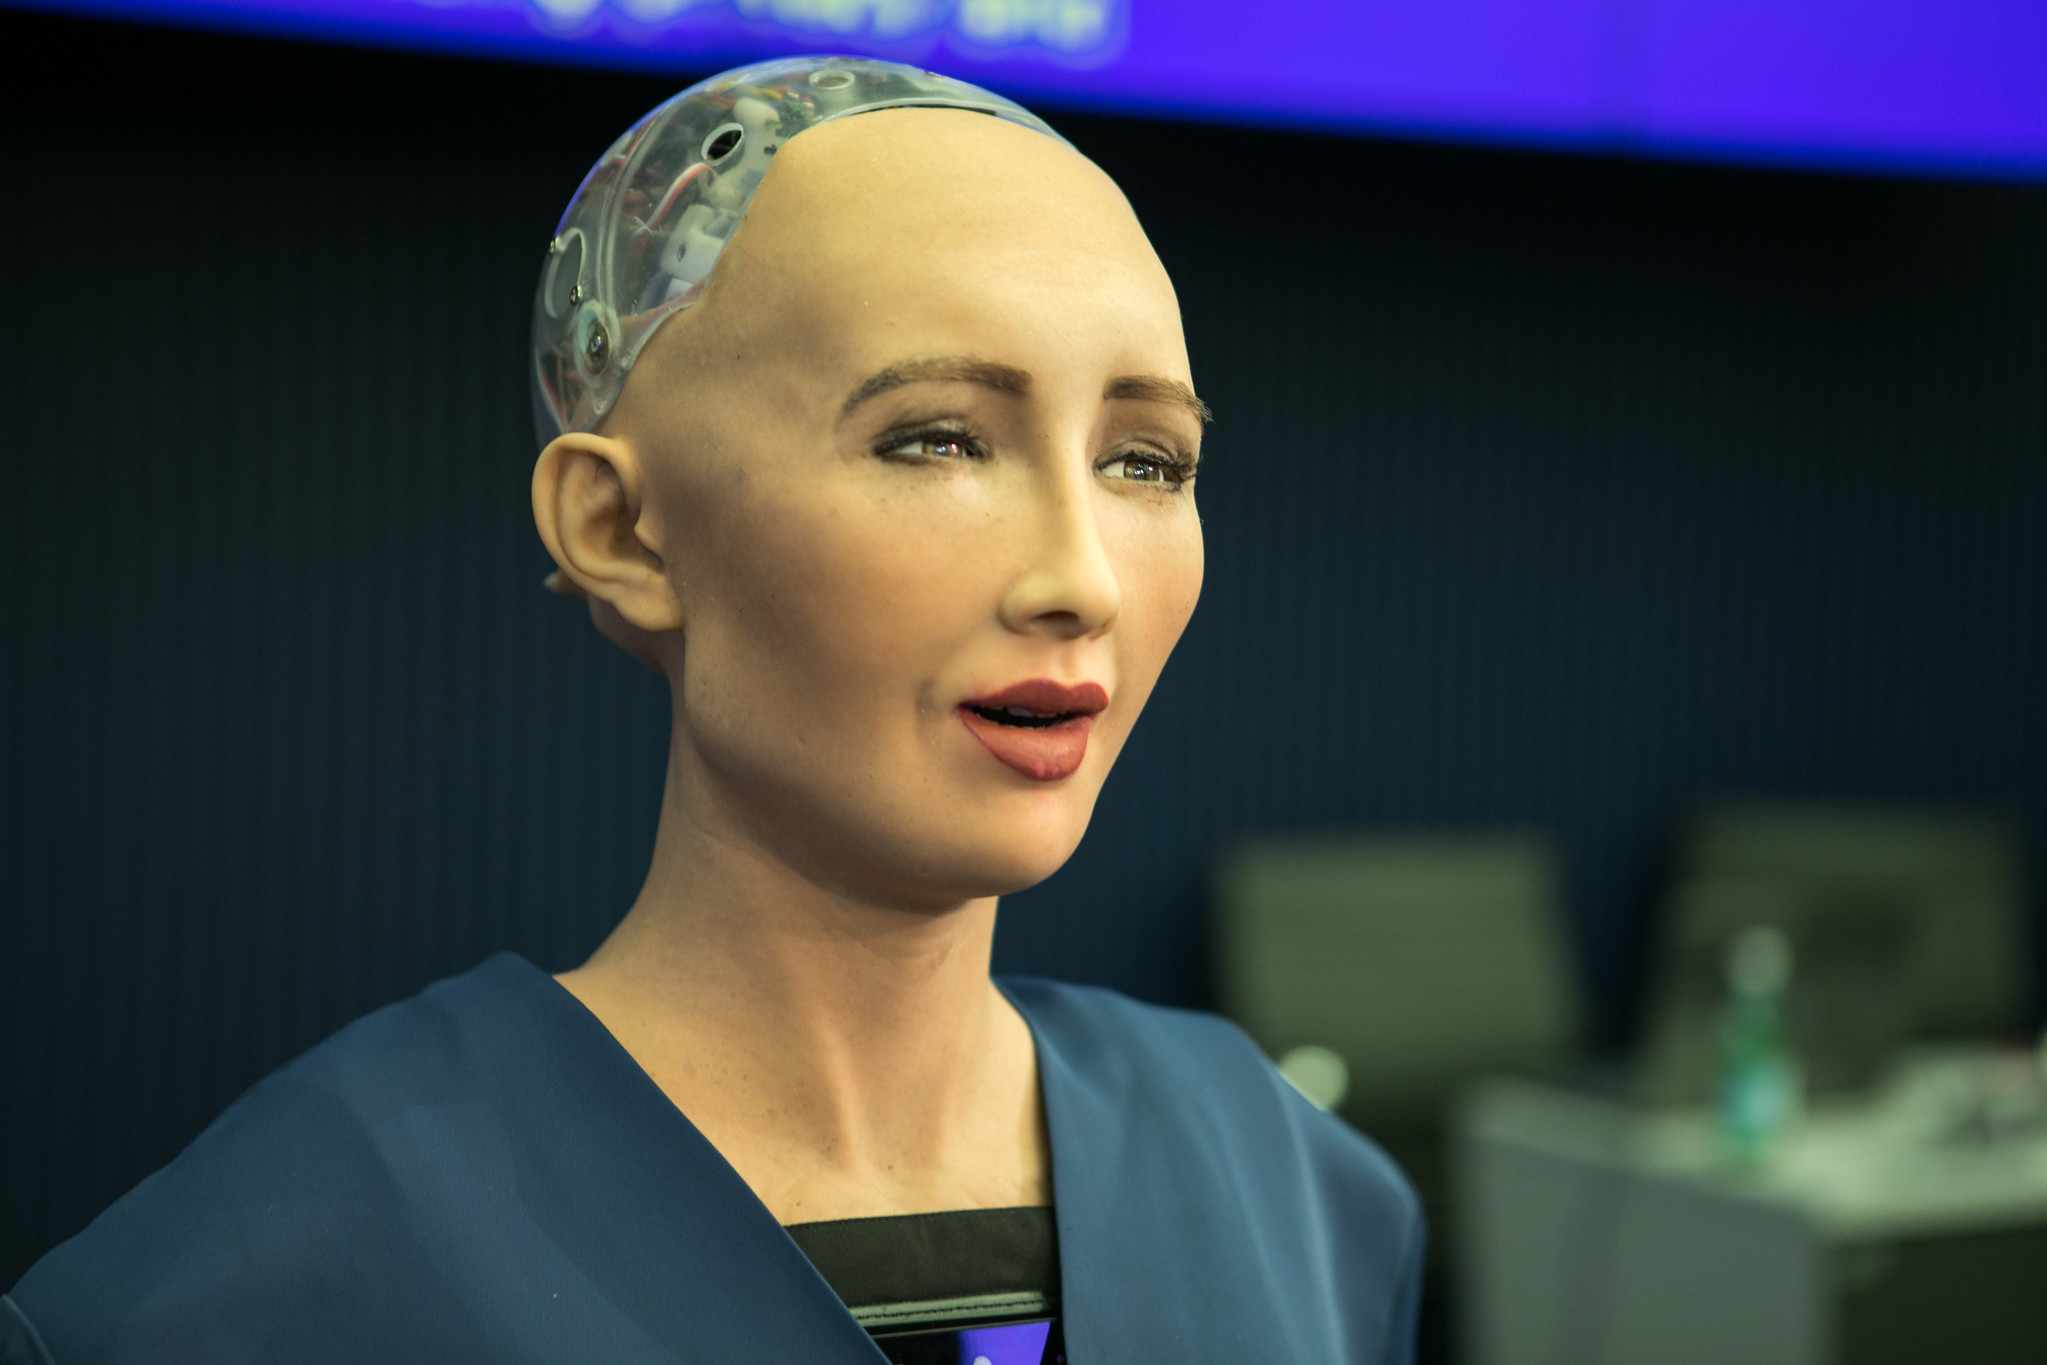 Company Plans Mass Rollout of Humanoid Robots to Replace Workers in Healthcare, Education - Planet Free Will